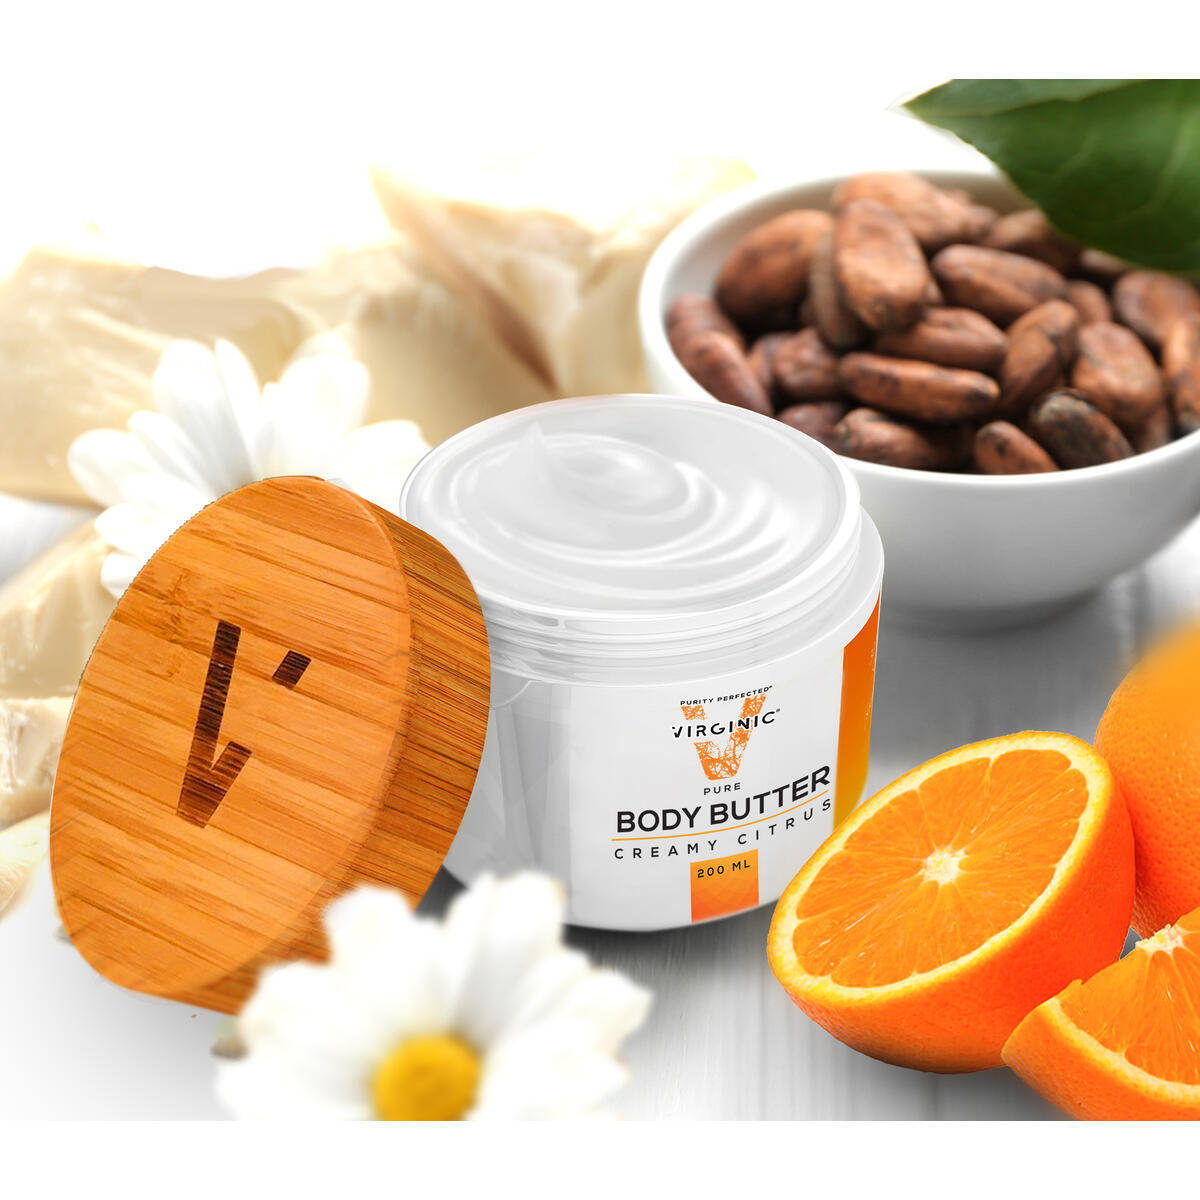 Body Butter | New Nano Science in Anti Aging | Nano Purity - The Most Biologically Pure Product on the Market | Nano Particles Work on Deepest Skin Layers | V Limited Edition